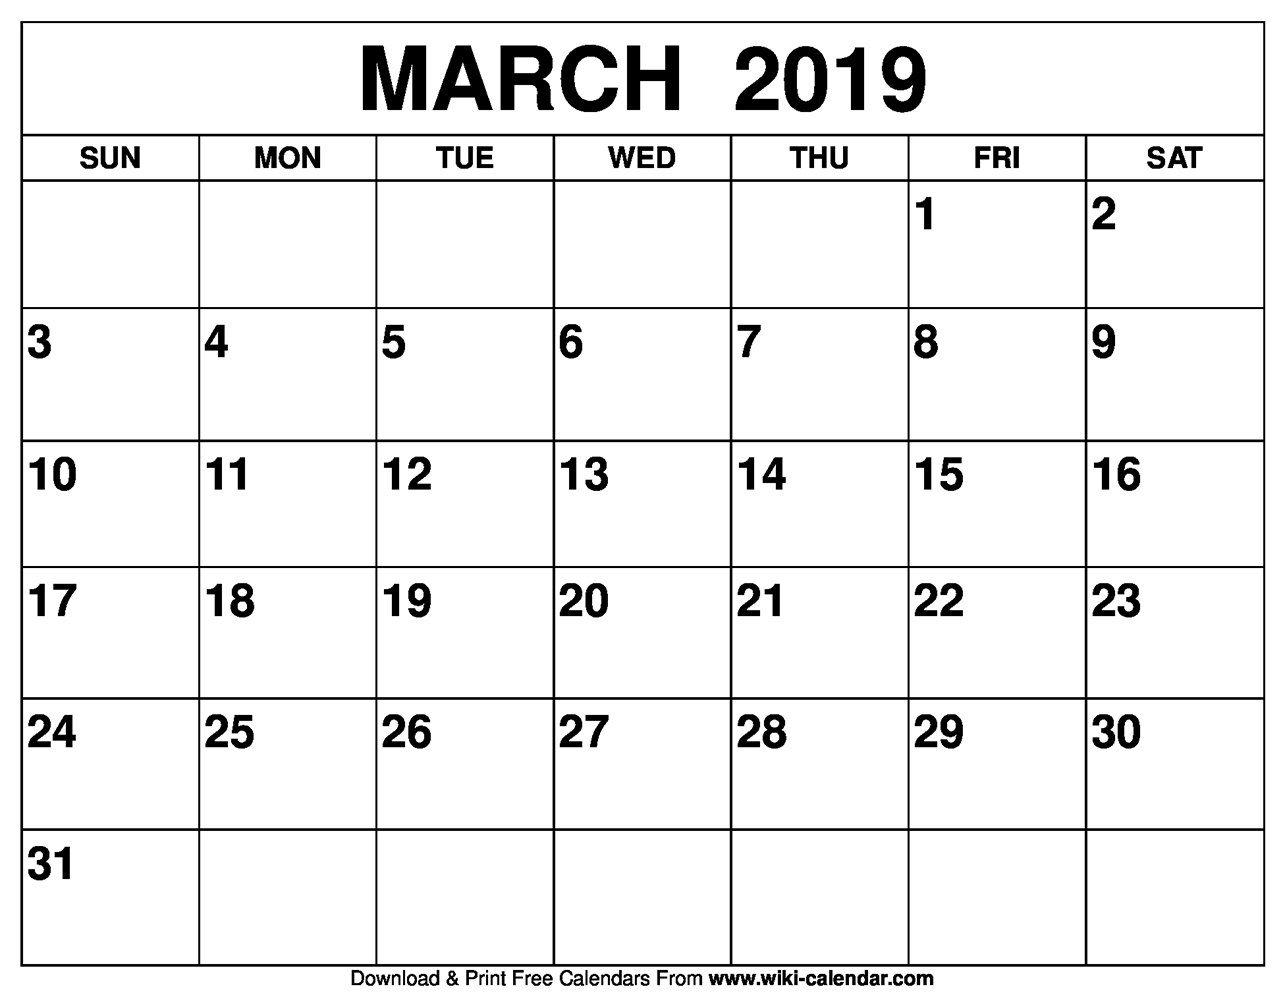 Blank March 2019 Calendar Printable A Calendar For March 2019